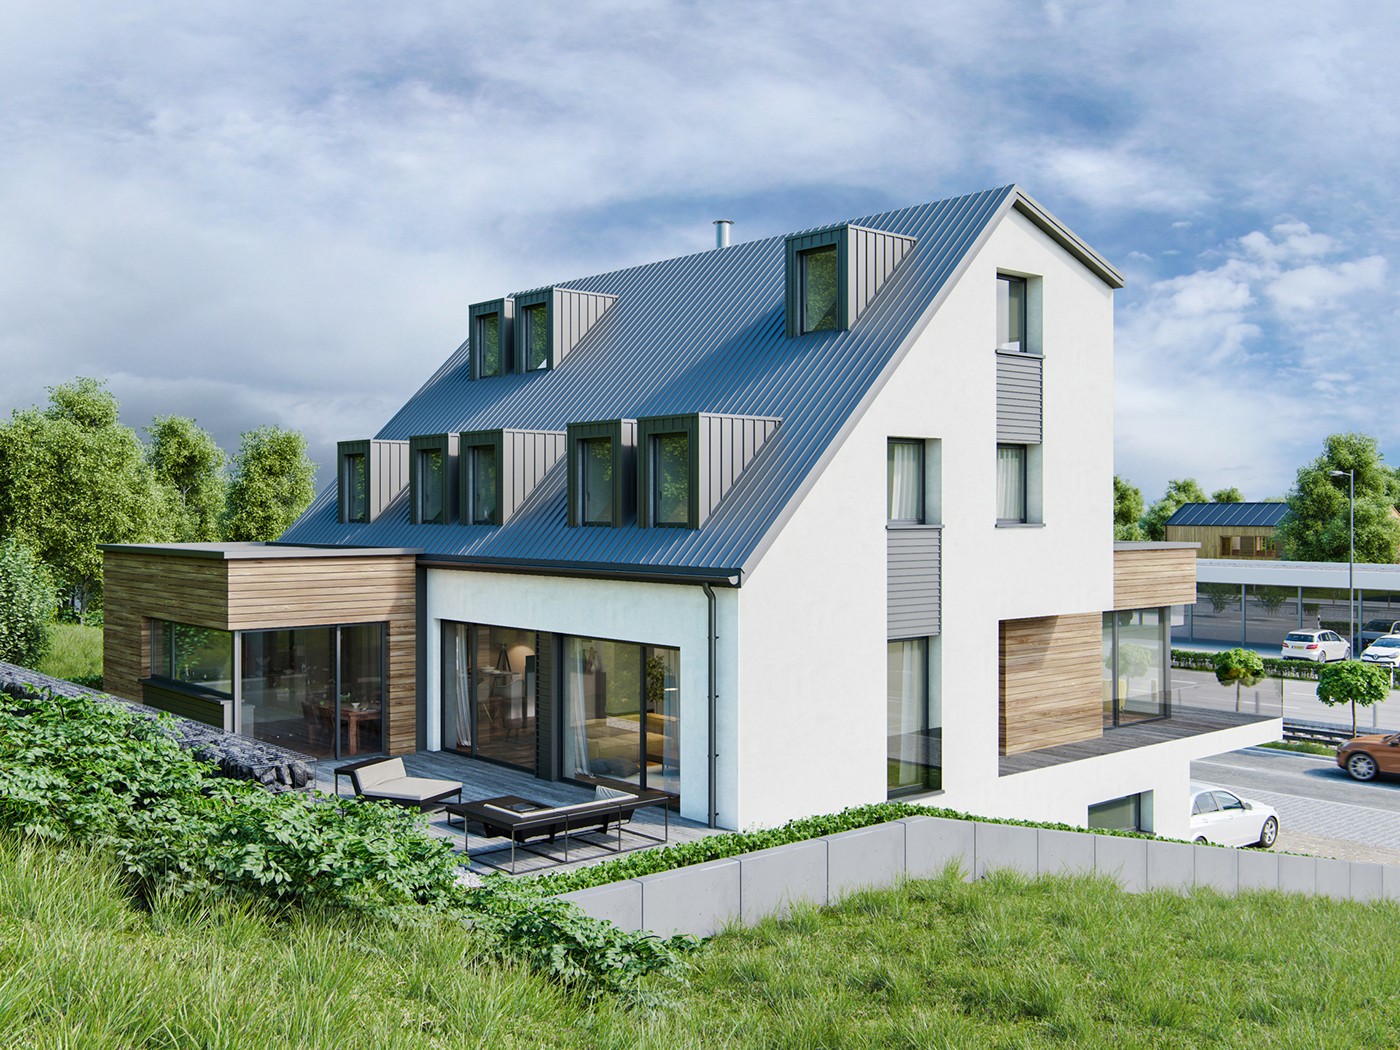 House in luxembourg on behance for Luxembourg homes